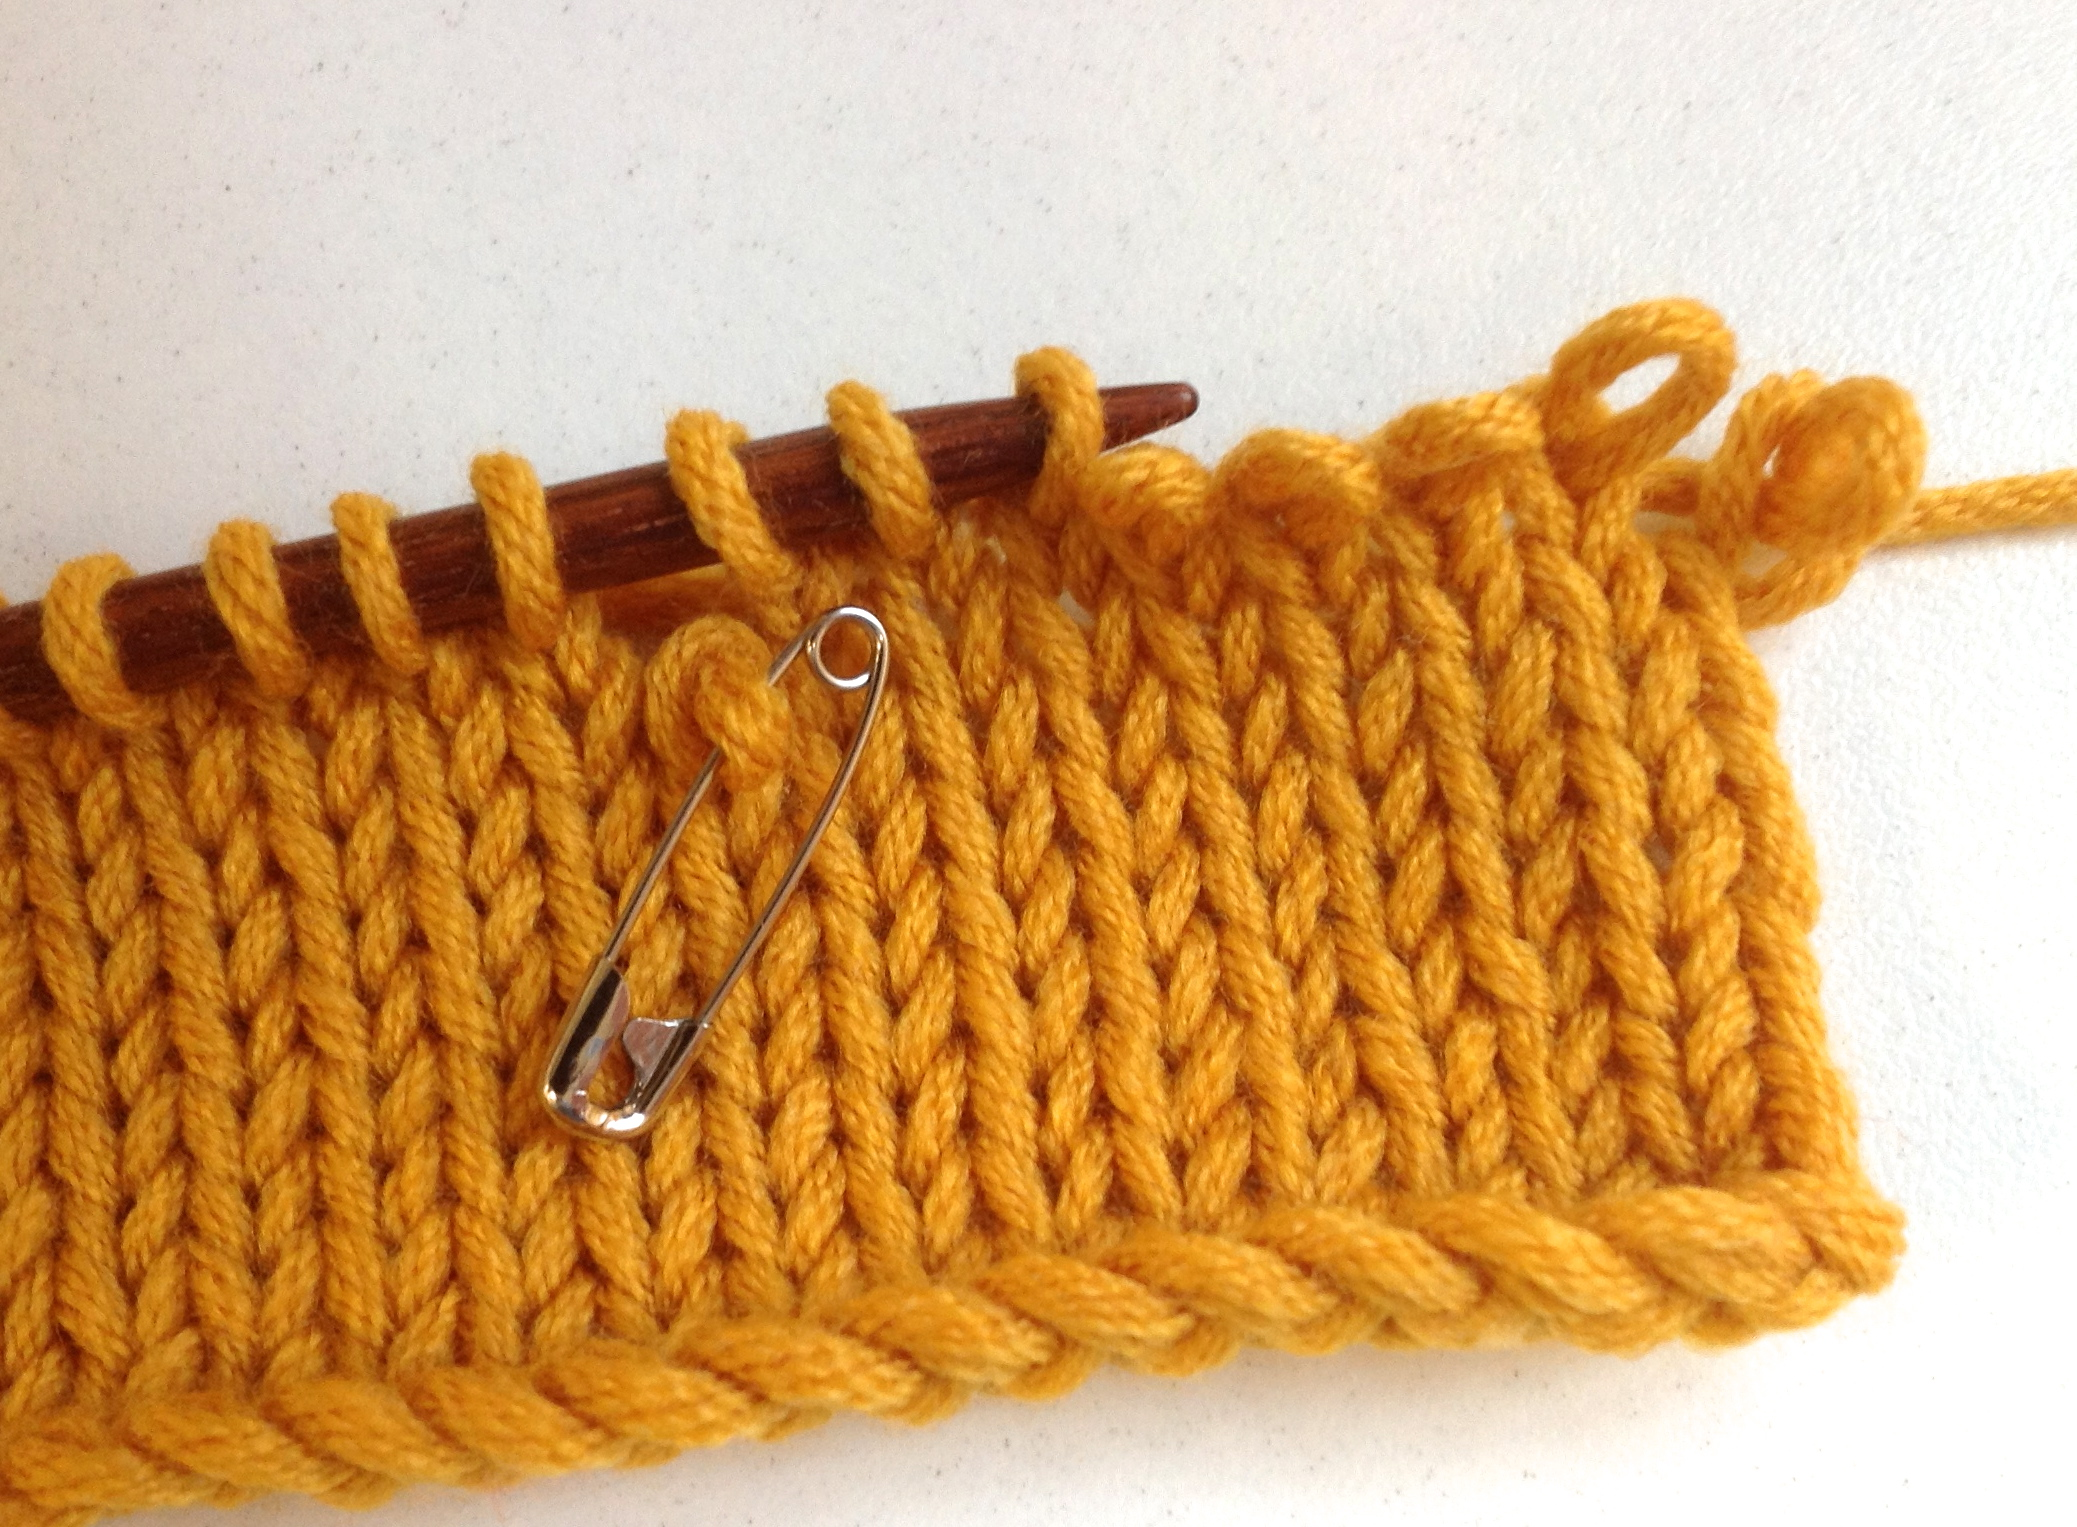 Knitting Dropped Stitch Help : Ask Amanda: How do I rip out my knitting?